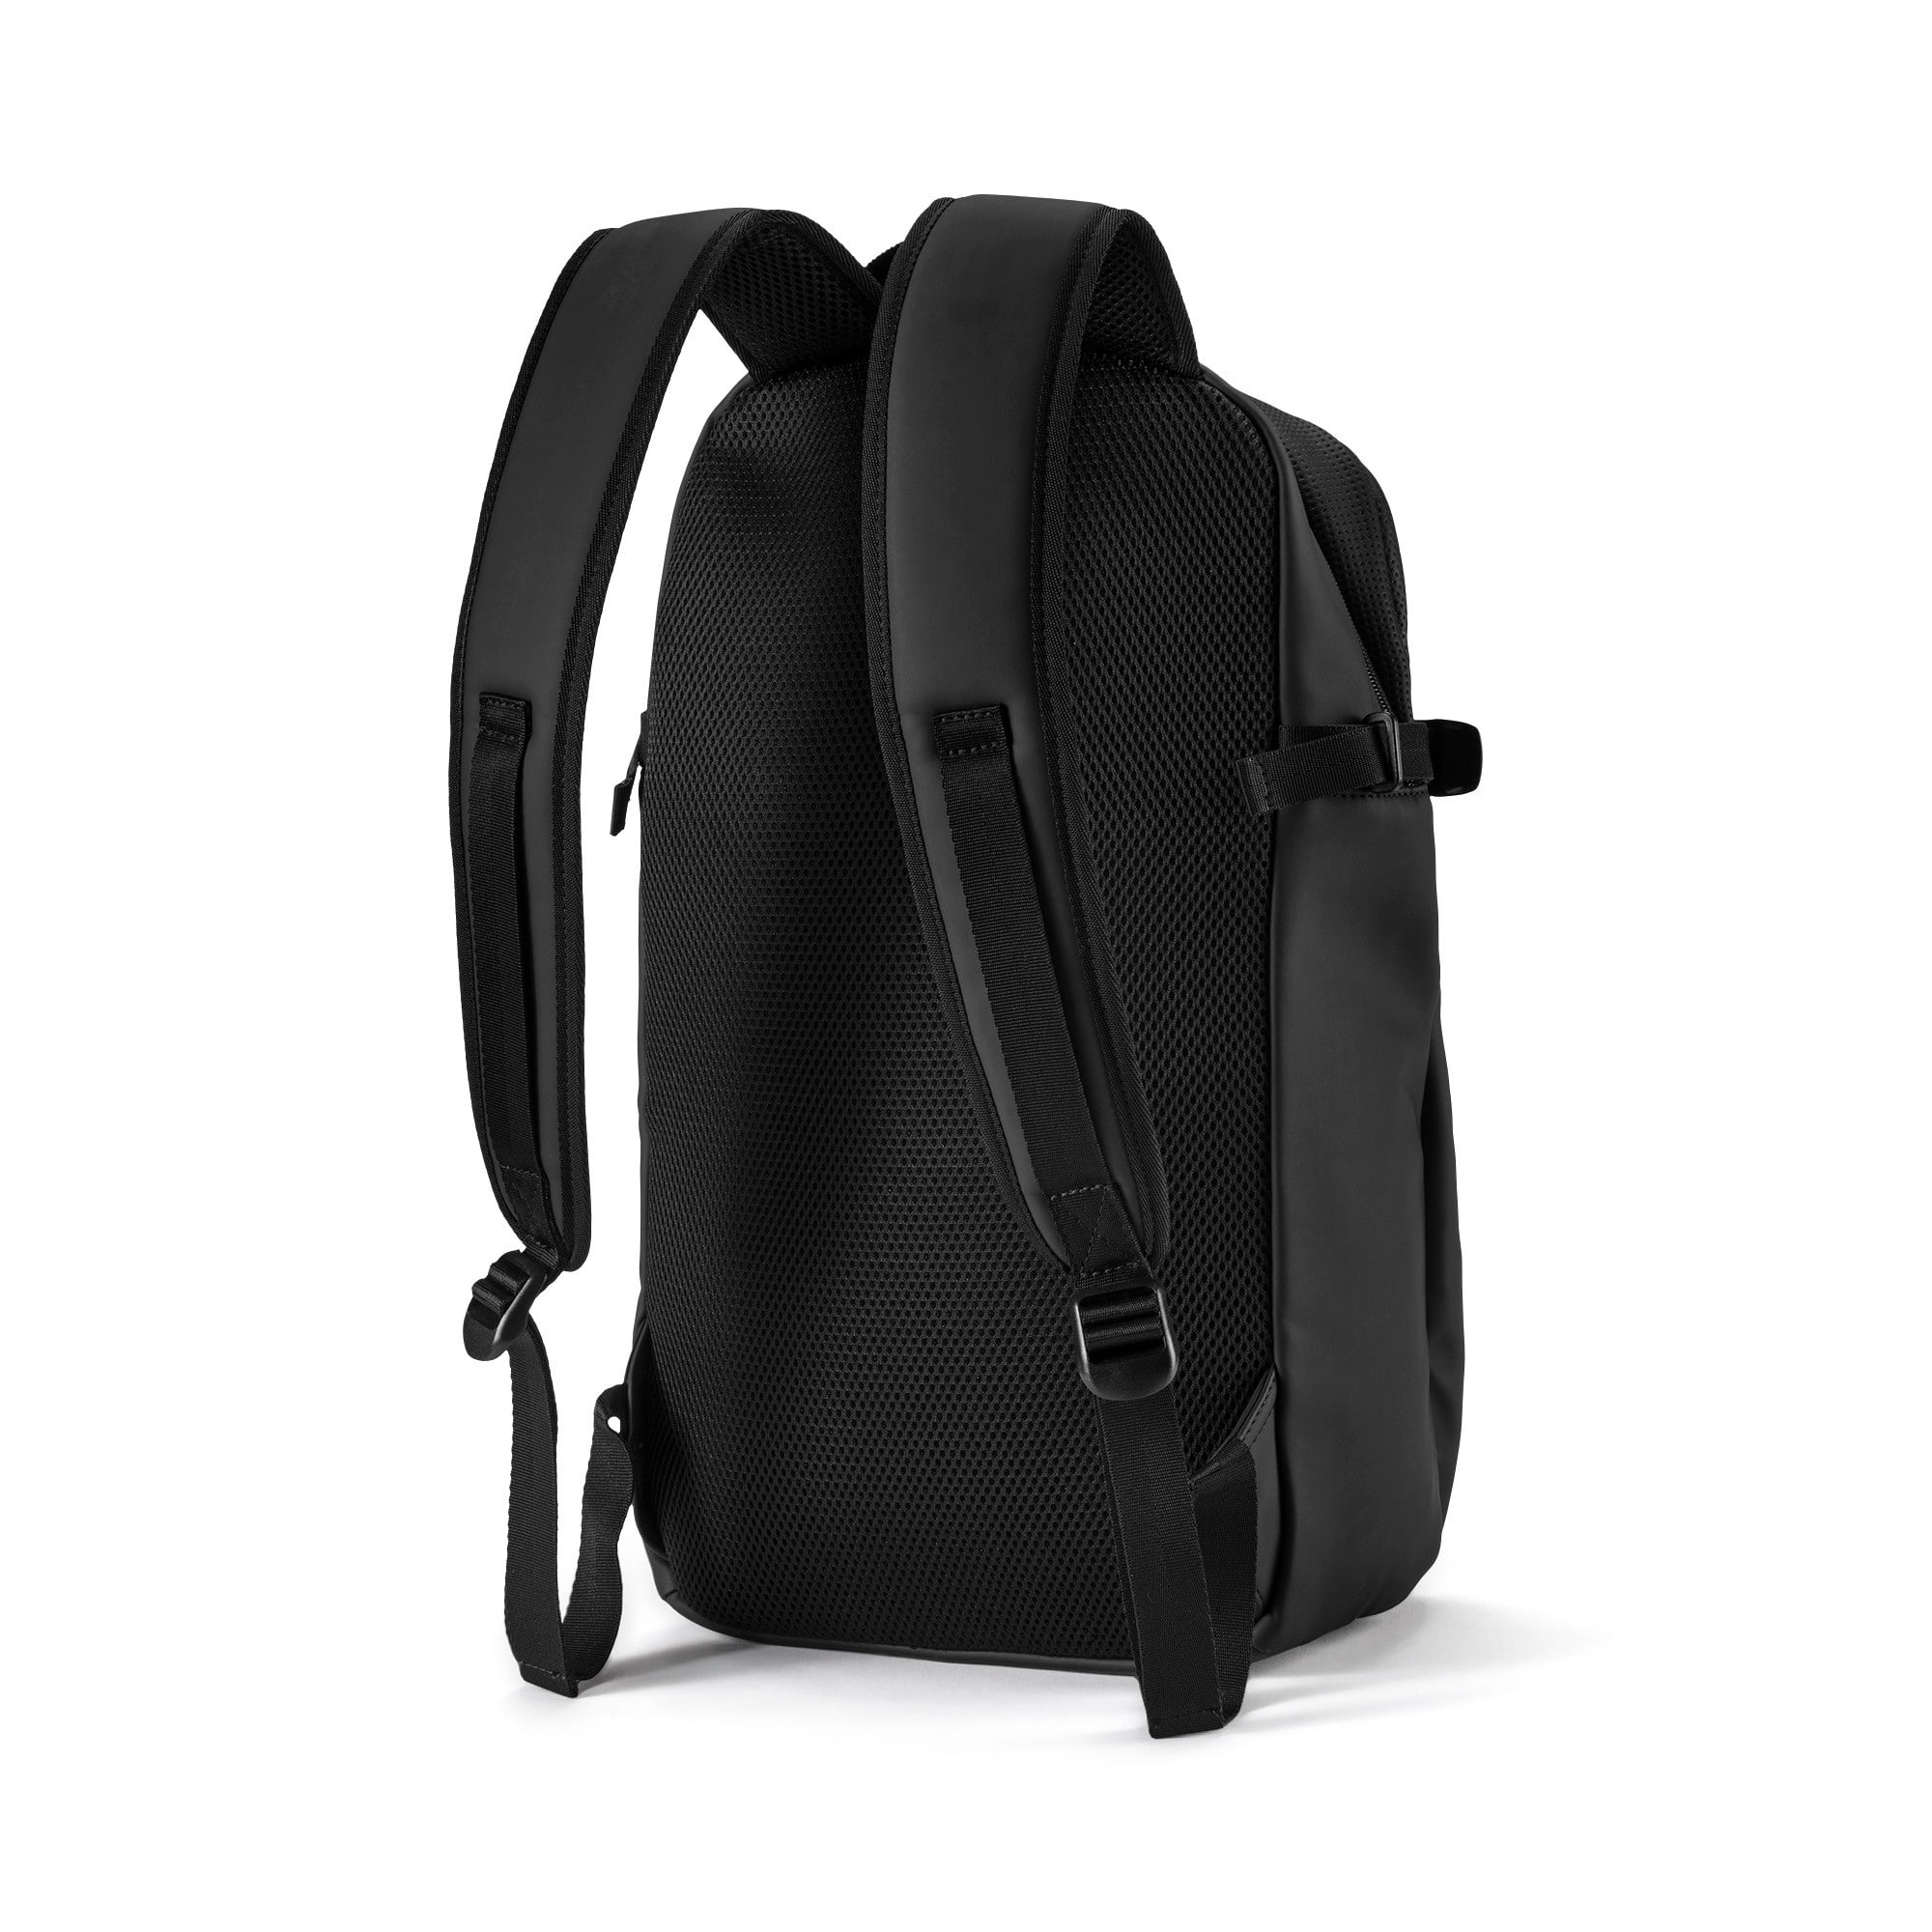 Thumbnail 3 of Ferrari Lifestyle Backpack, Puma Black, medium-IND